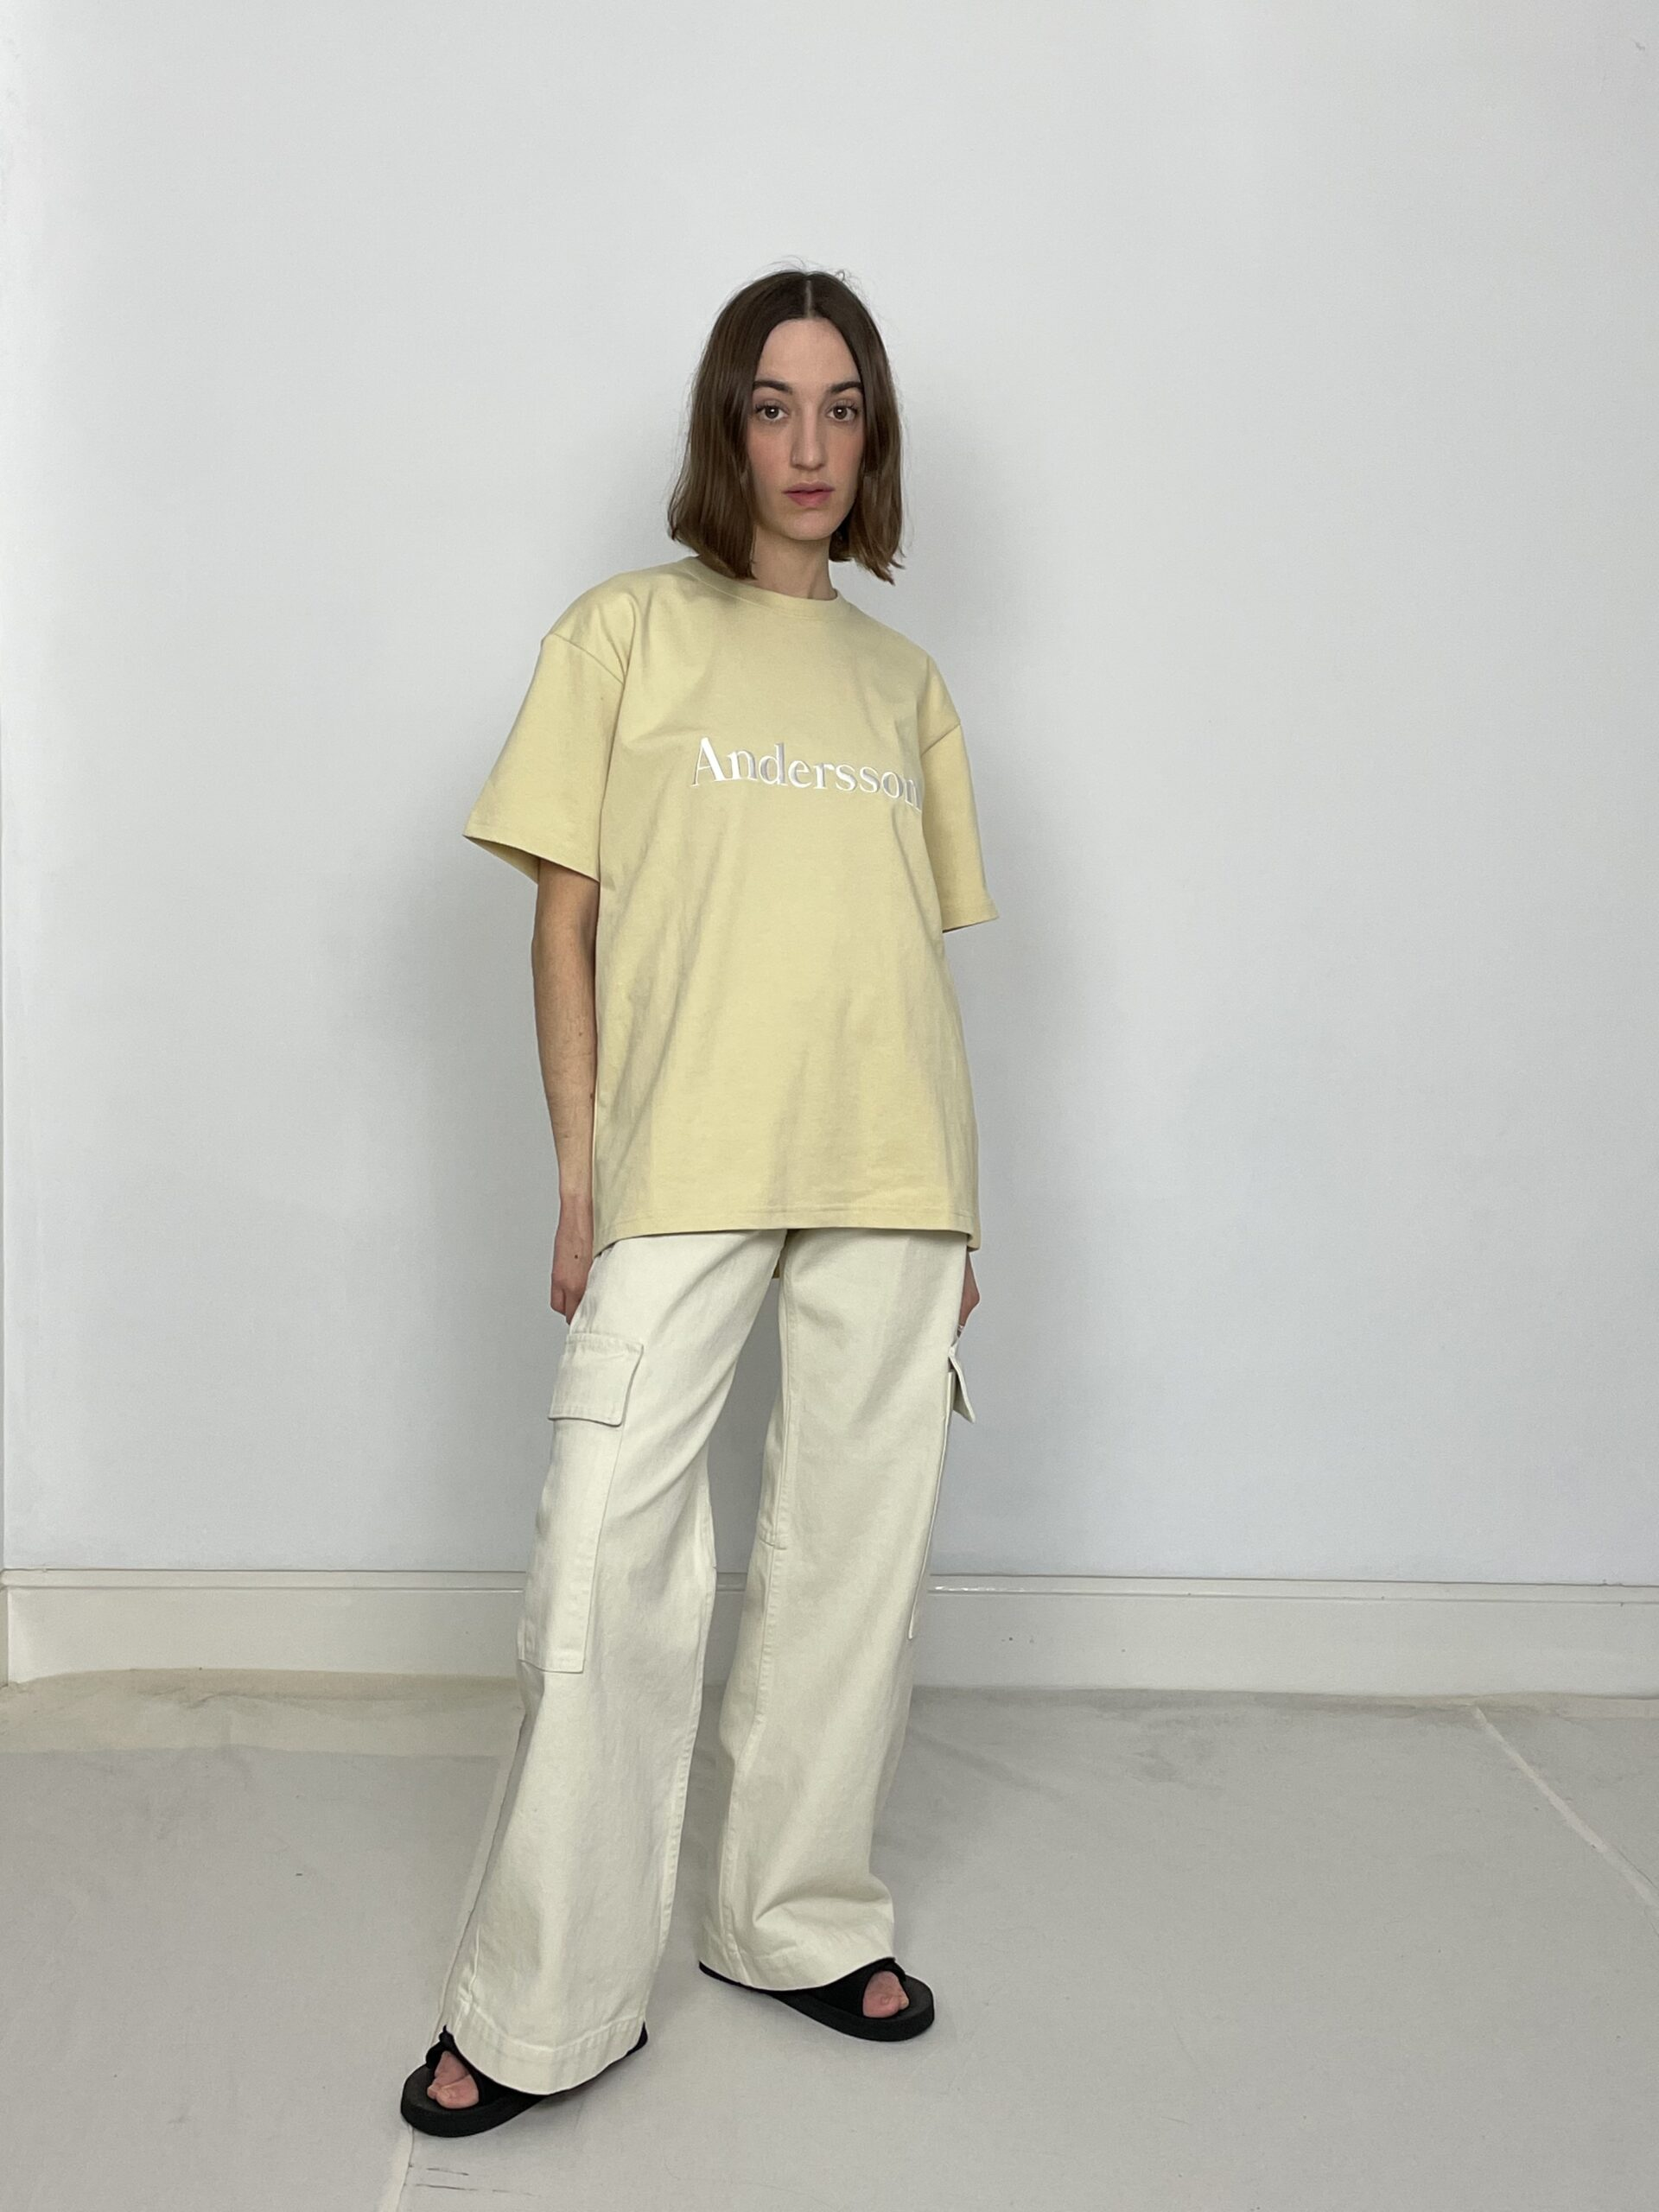 Andersson Bell embroidery tee in cream